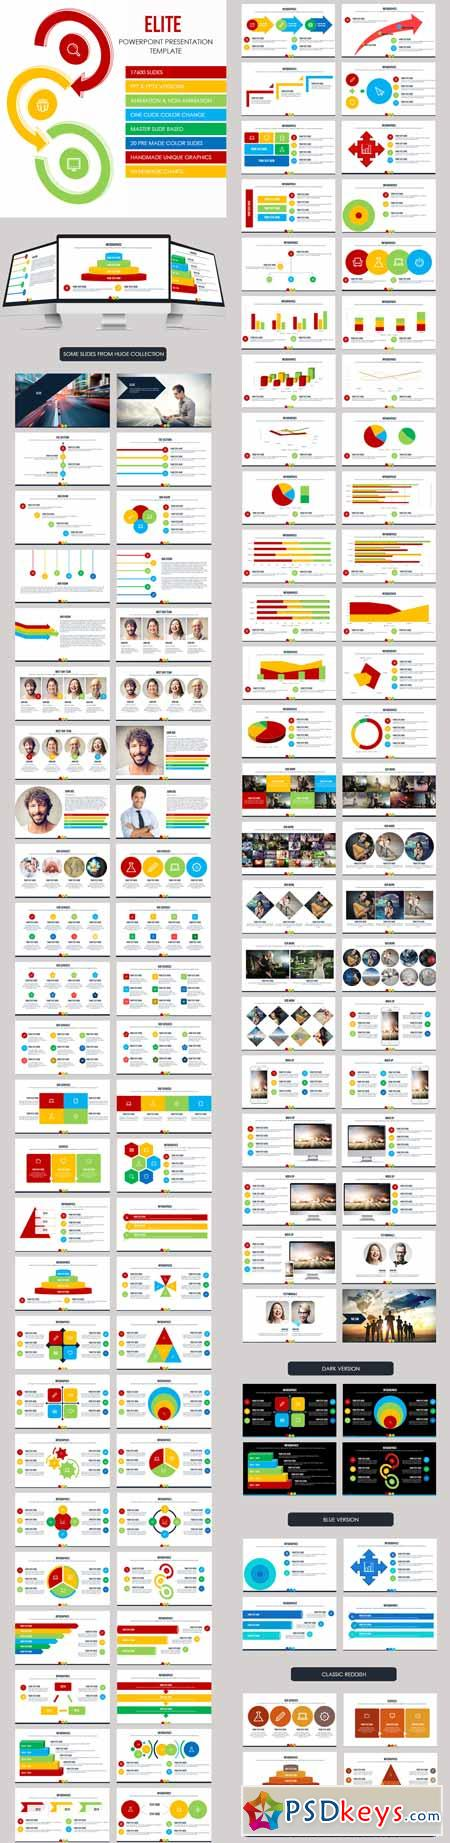 elite - multipurpose presentation template 9947185 » free download, Presentation templates